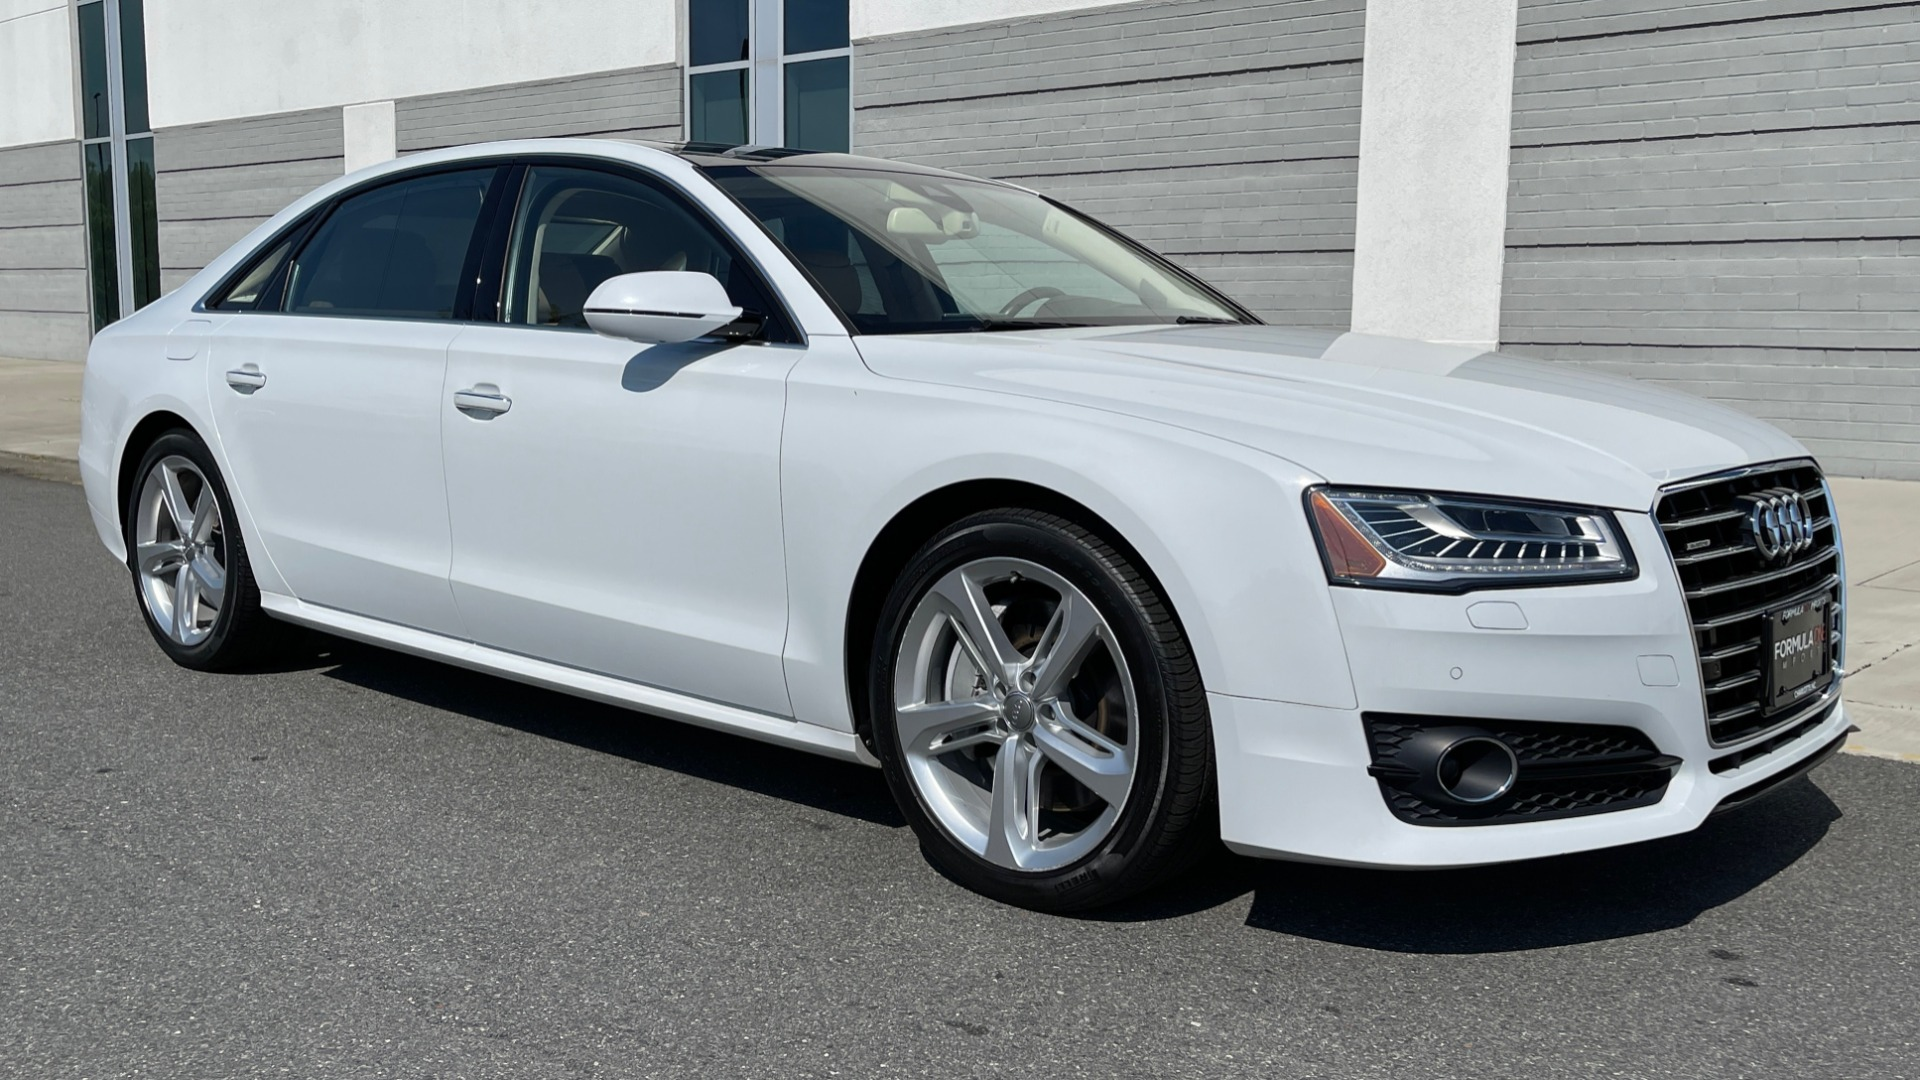 Used 2018 Audi A8 L SPORT 4.0T / EXECUTIVE PKG / NAV / BOSE / SUNROOF / REARVIEW for sale Sold at Formula Imports in Charlotte NC 28227 5